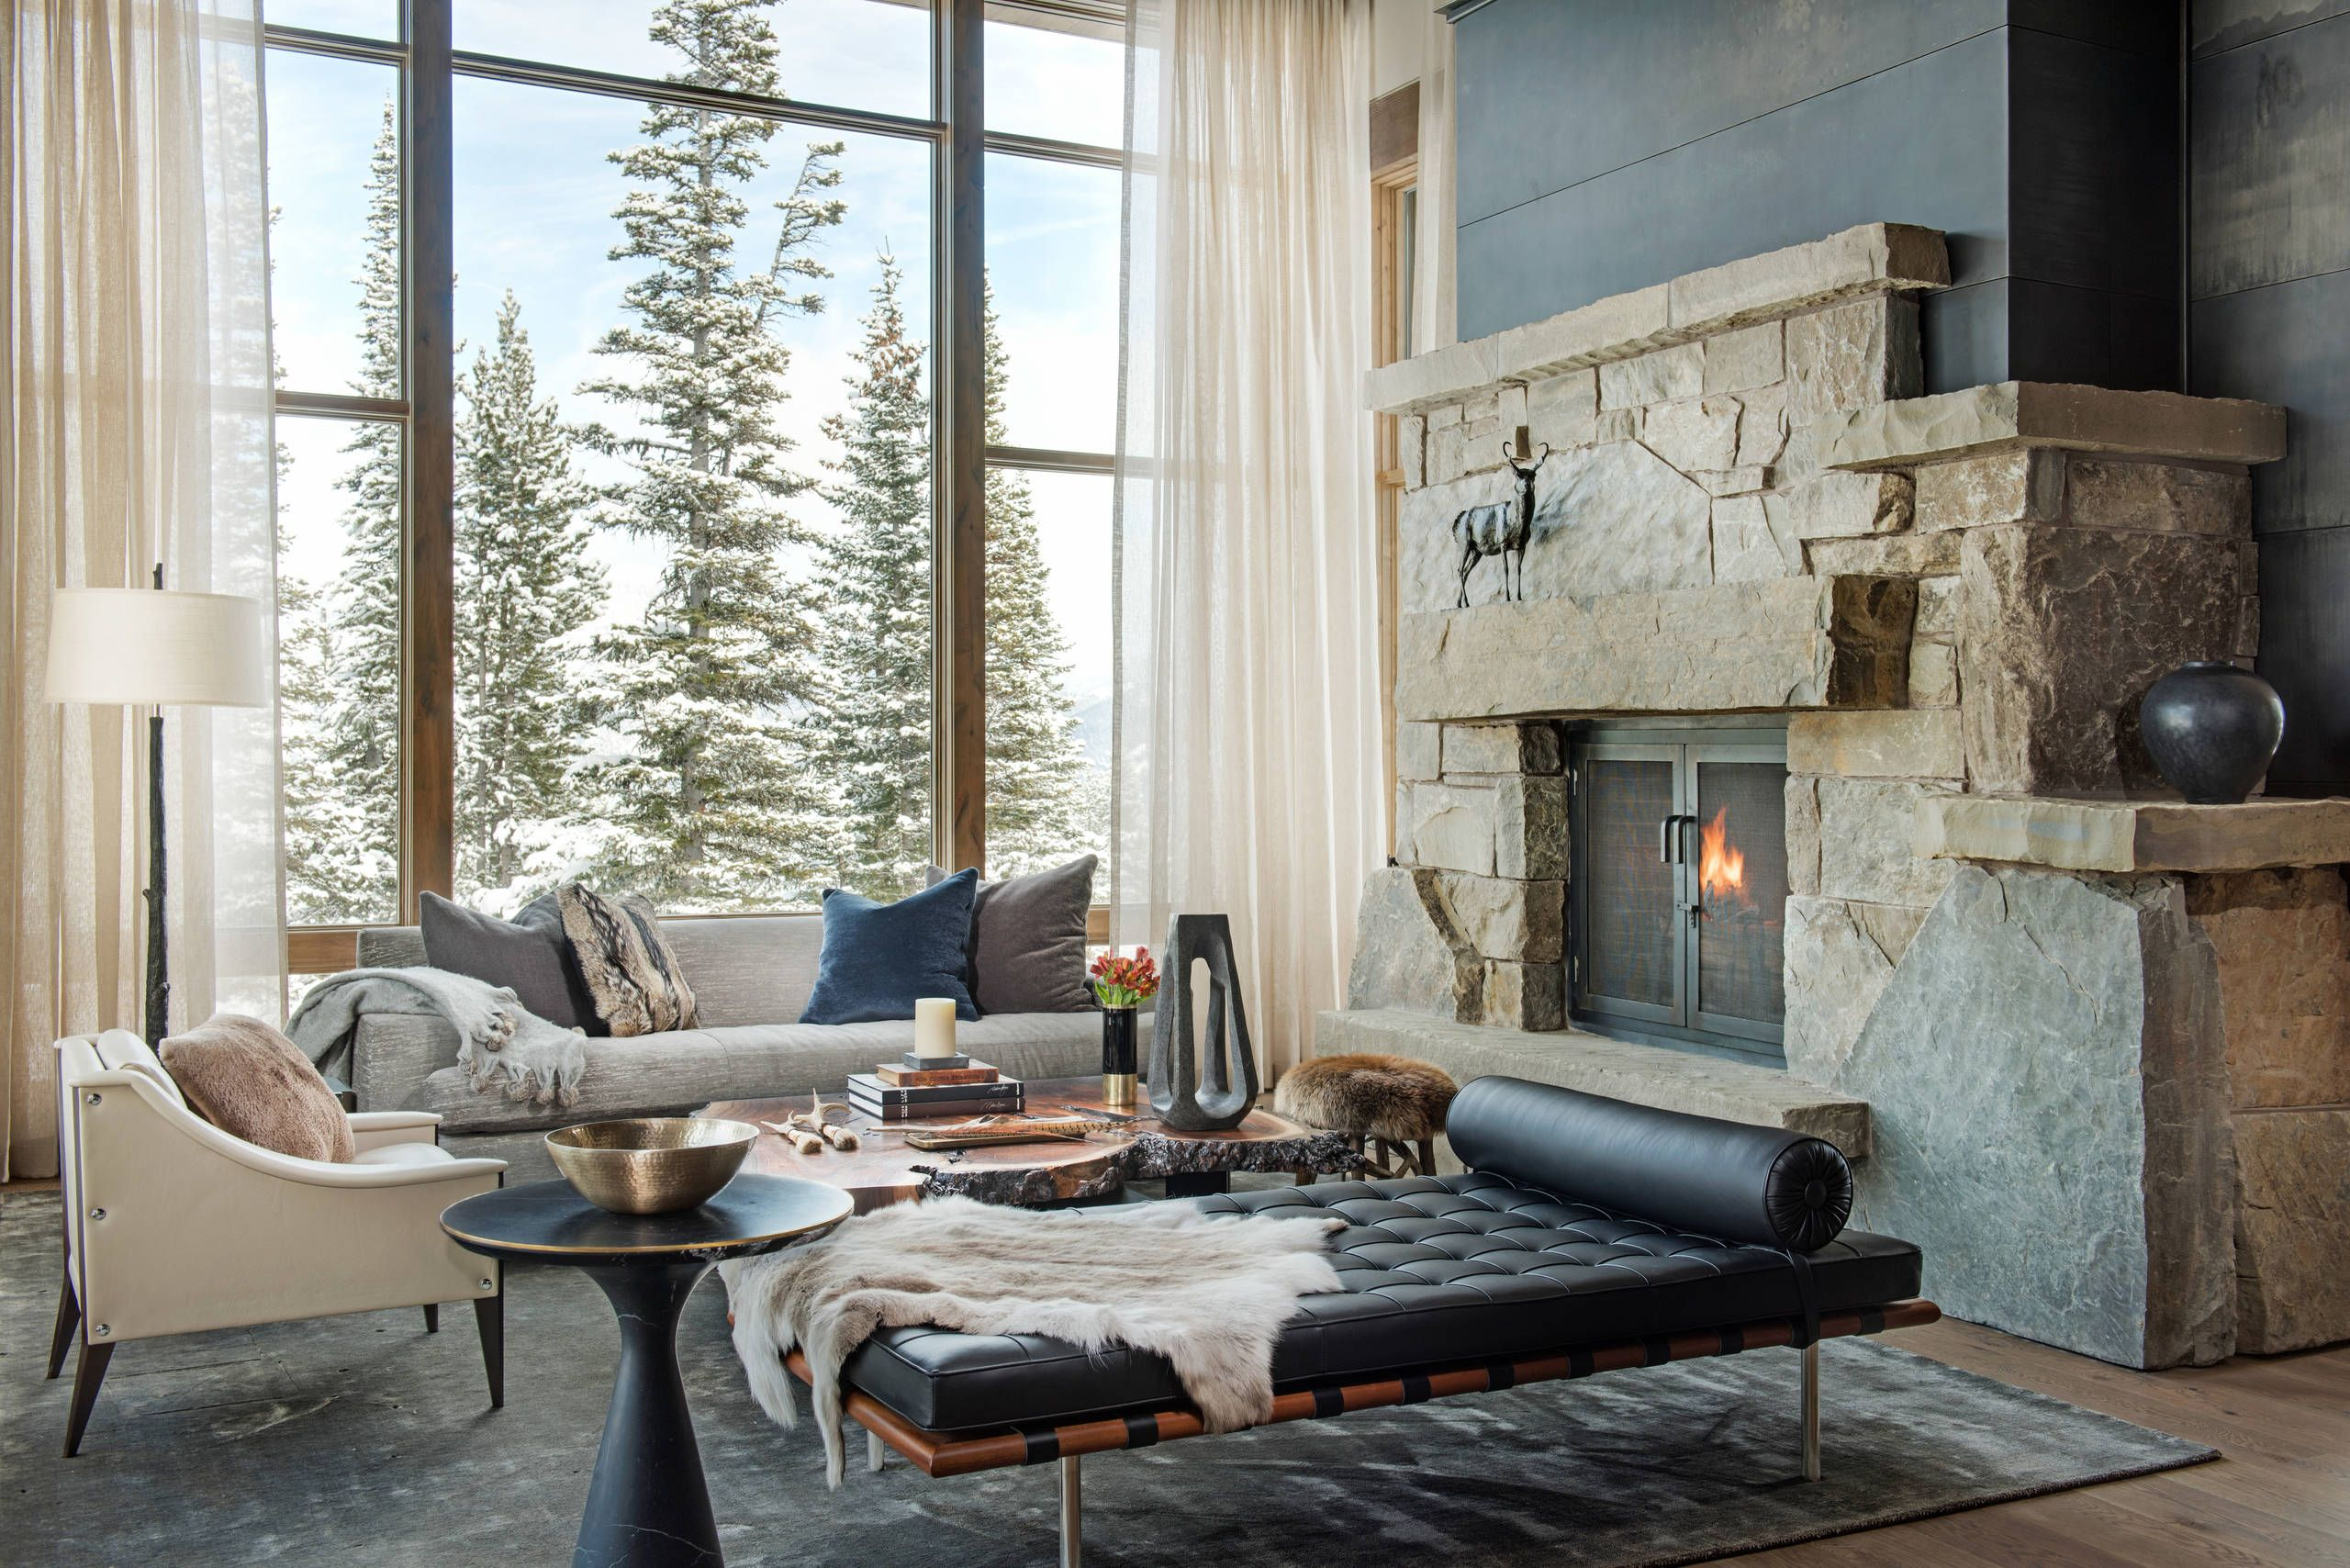 46 picture perfect living rooms living rooms mountain modern rh pinterest ca